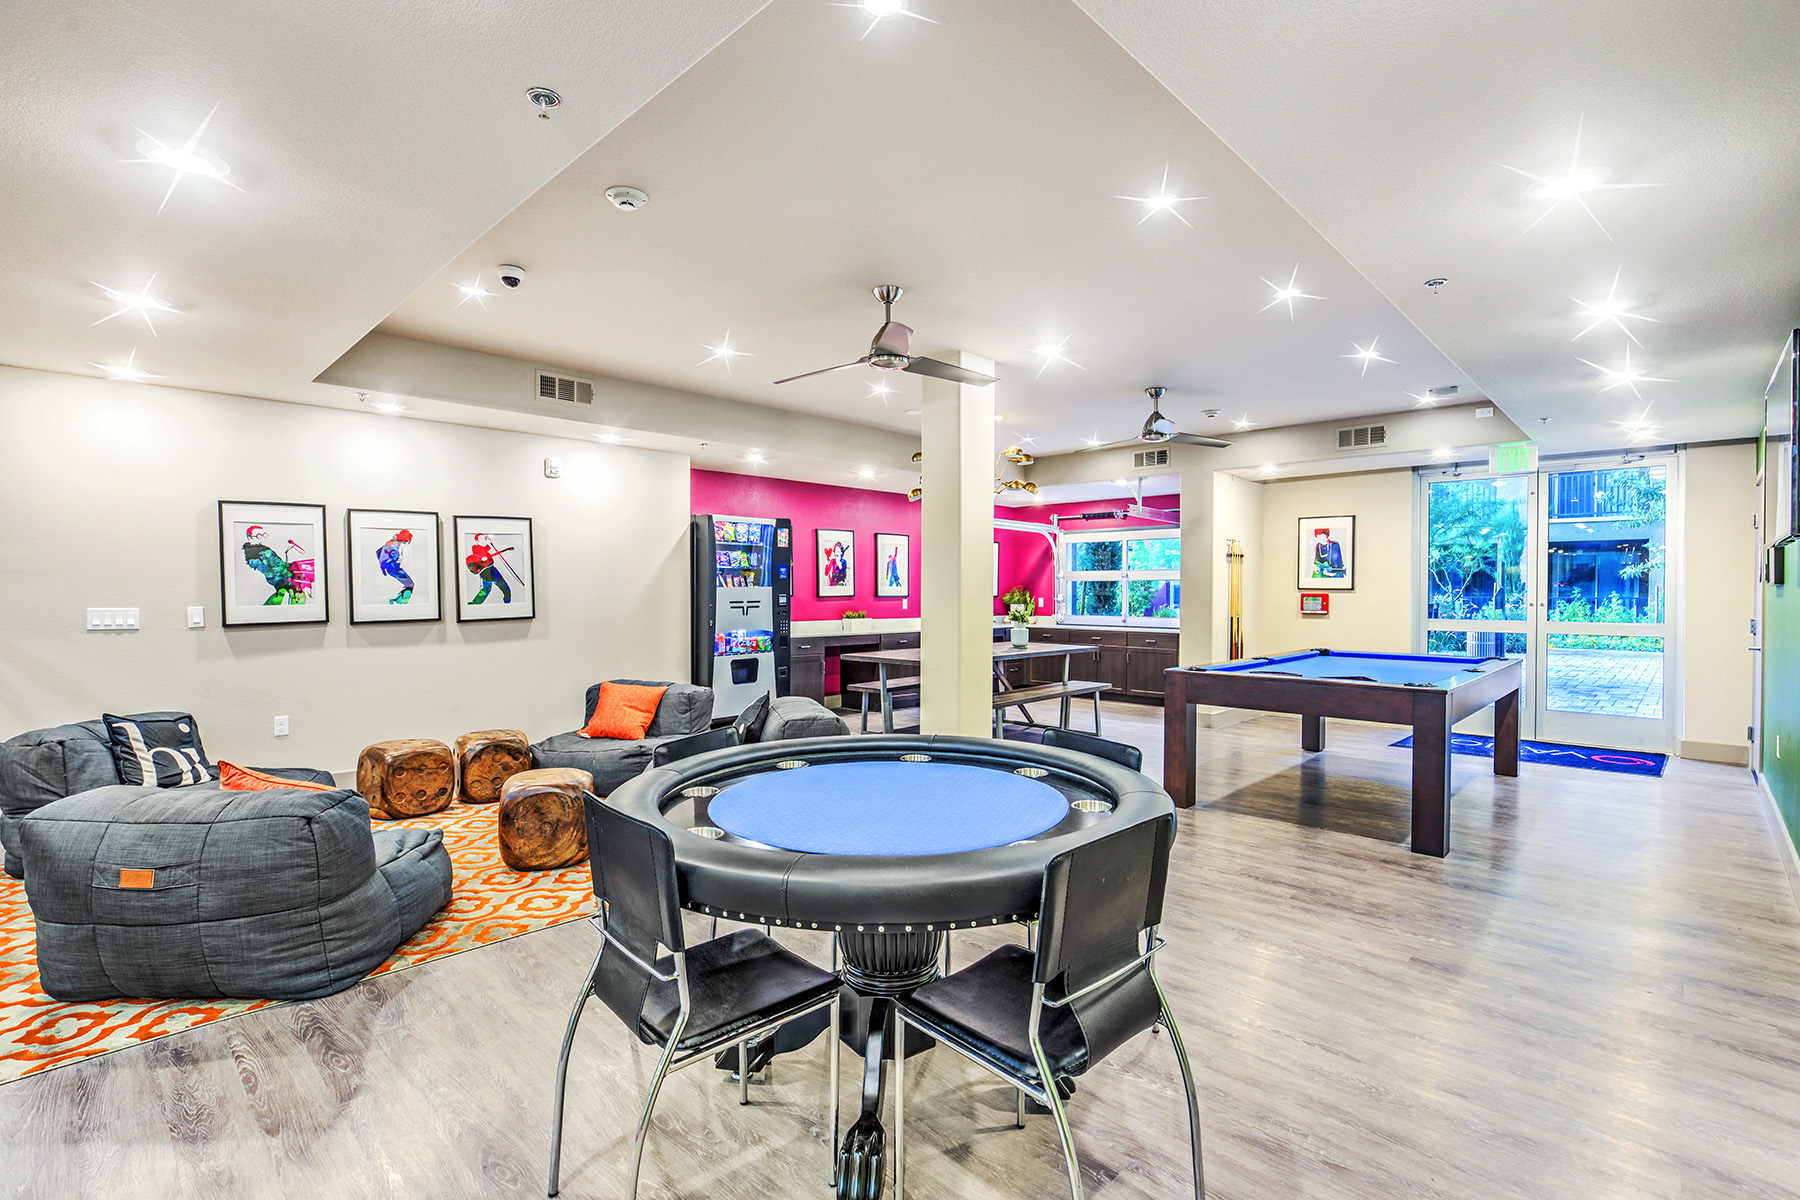 Expansive entertainment and dining room with glass doors leading to the patio. There is vibrant interior design, a poker table, large bean bag and memory foam seating, a pool table, plus a spacious kitchen with dining table and vending machine.